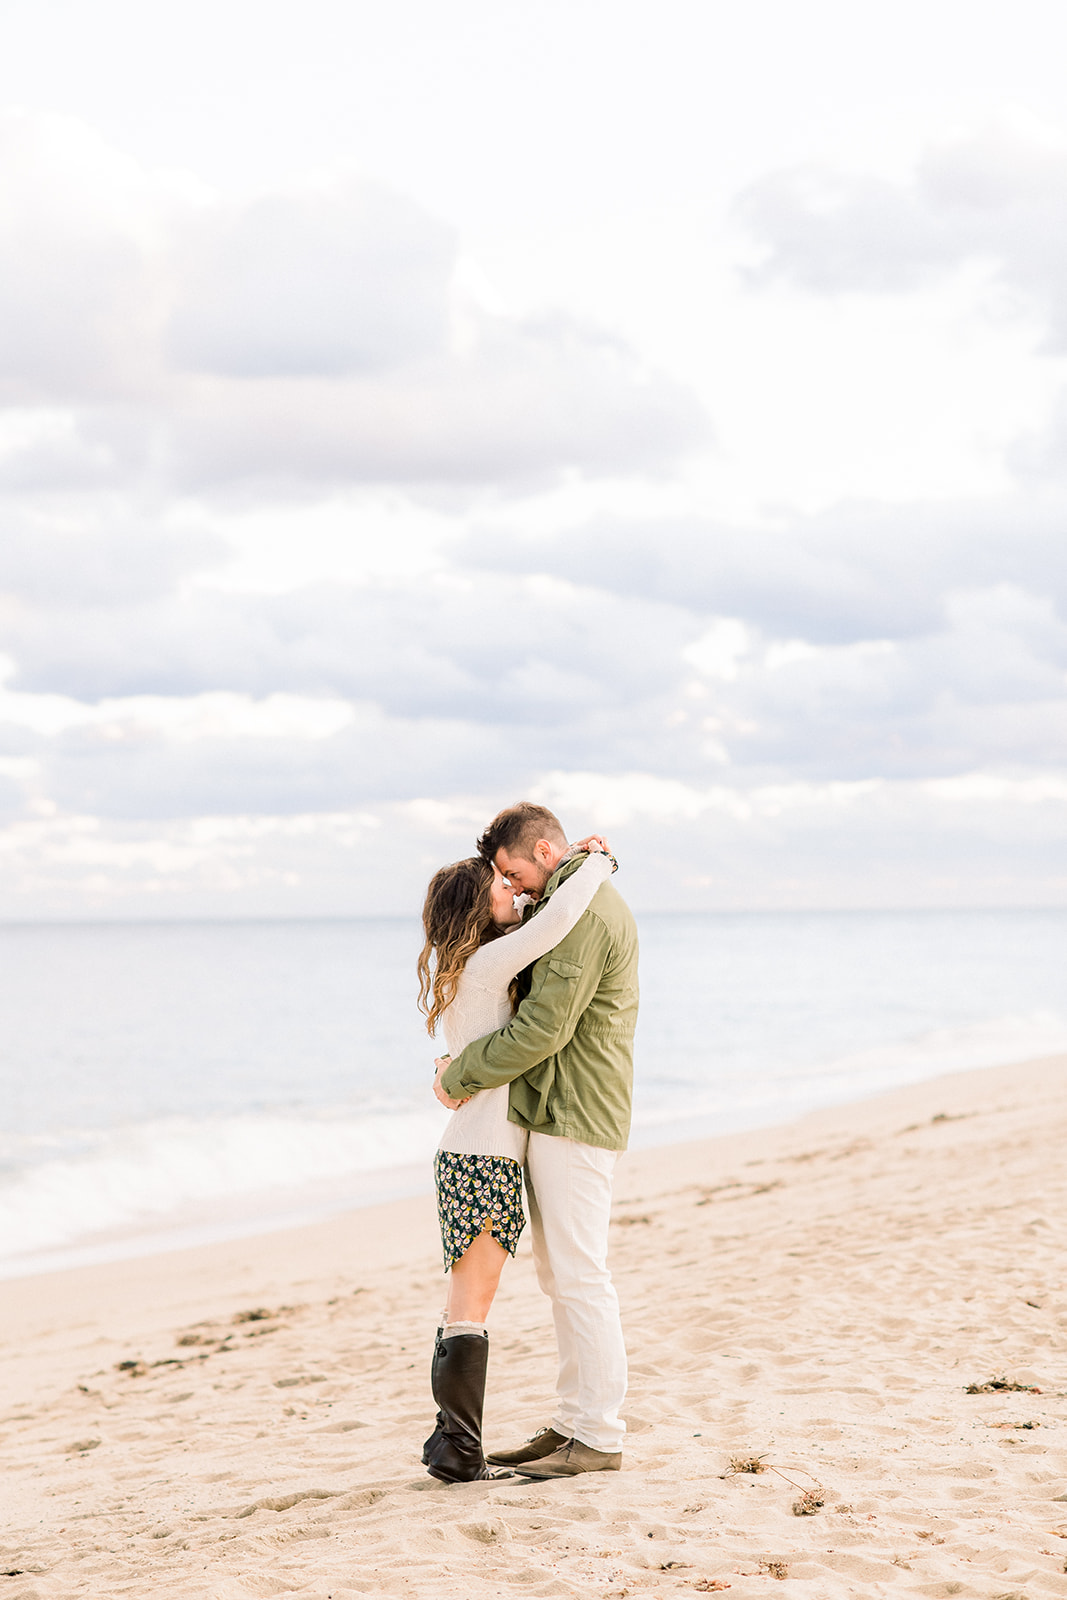 Nantucket Couples Photography and Marriage Advice